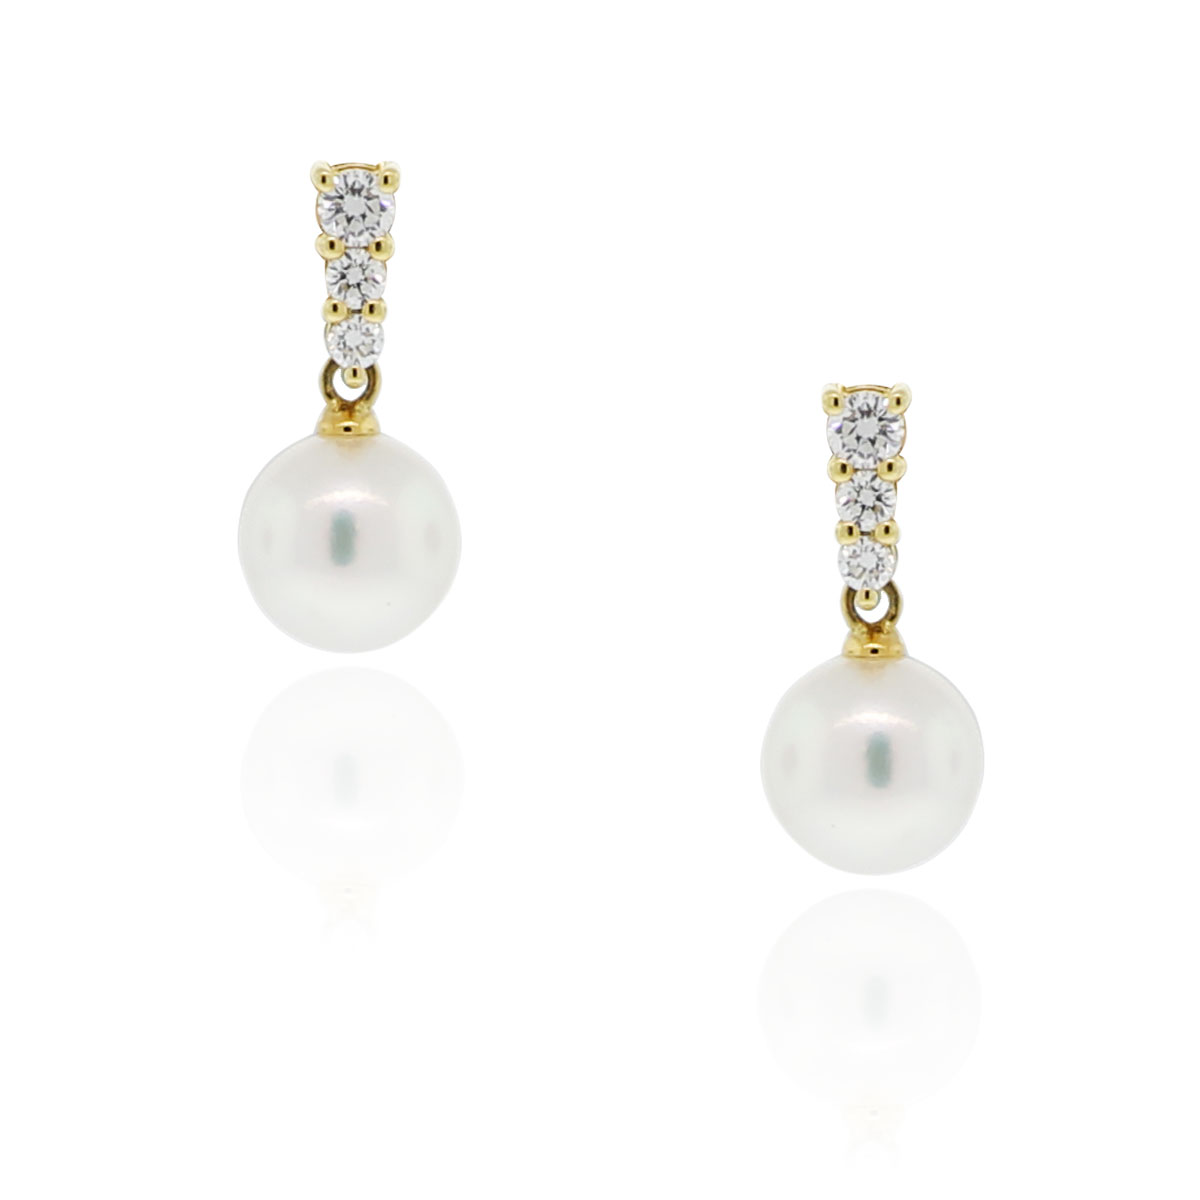 mikimoto 18k yellow gold diamond pearl drop earrings. Black Bedroom Furniture Sets. Home Design Ideas